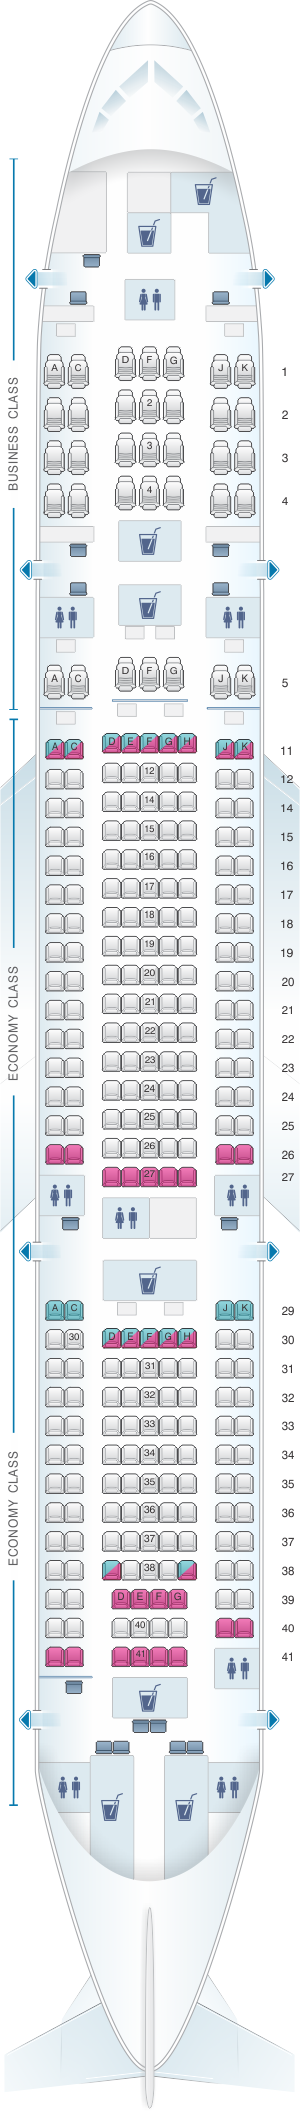 Seat map for Malaysia Airlines Boeing B777 200